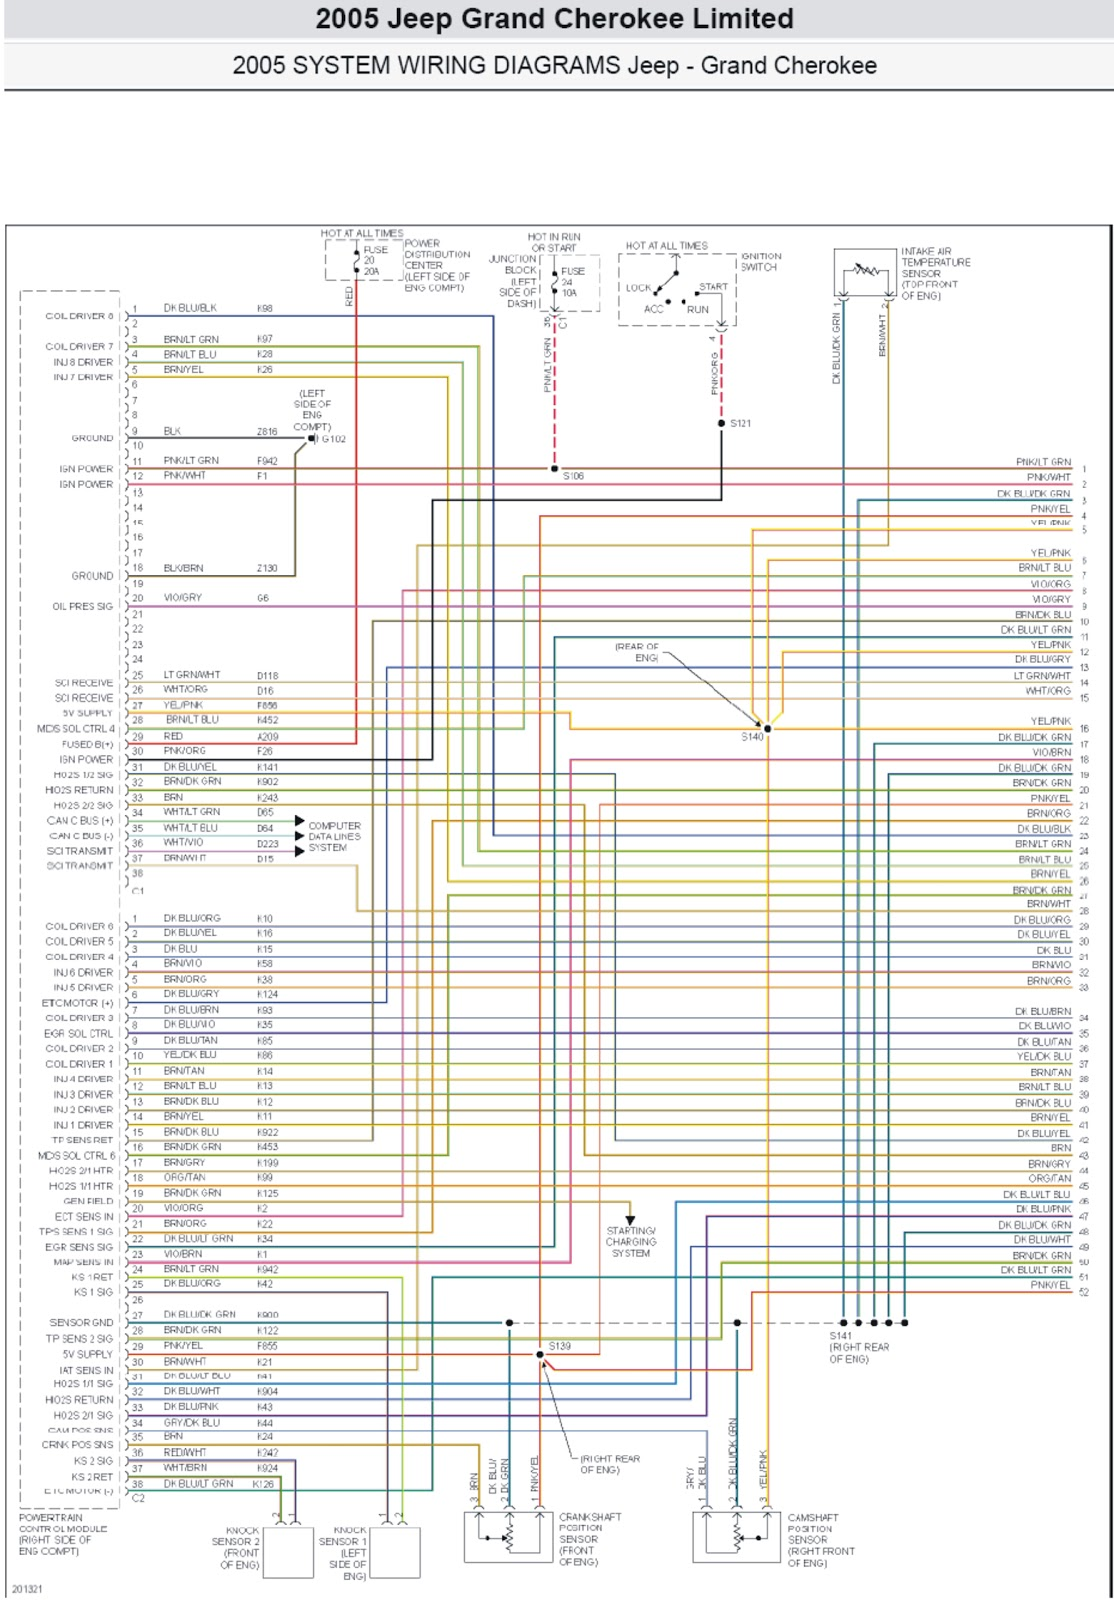 Wiring Diagram For 2005 Jeep Grand Cherokee Wiring Diagram Instruct Instruct Cfcarsnoleggio It